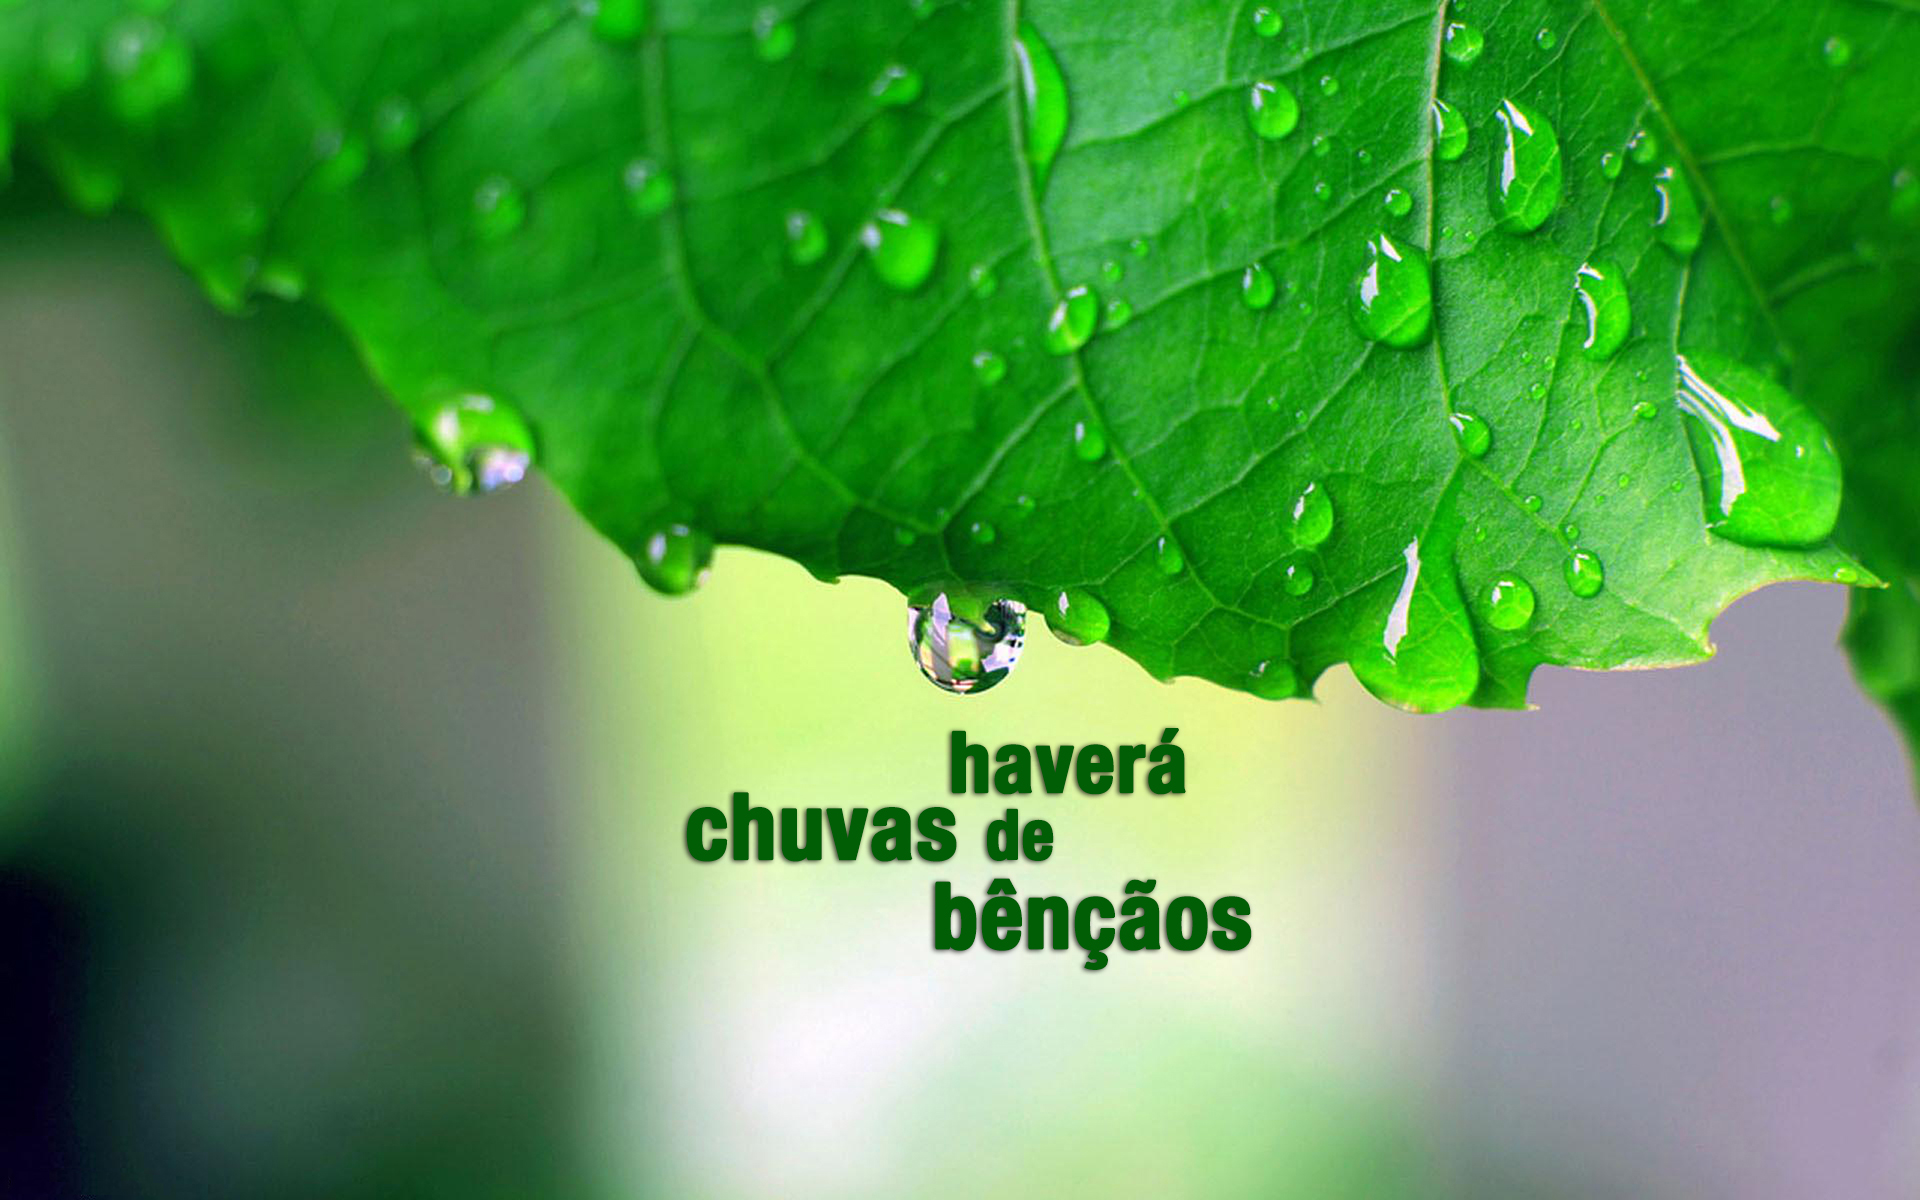 Wallpaper Of Love Quotes In English Chuvas De B 234 N 231 227 Os Wallpapers Crist 227 Os